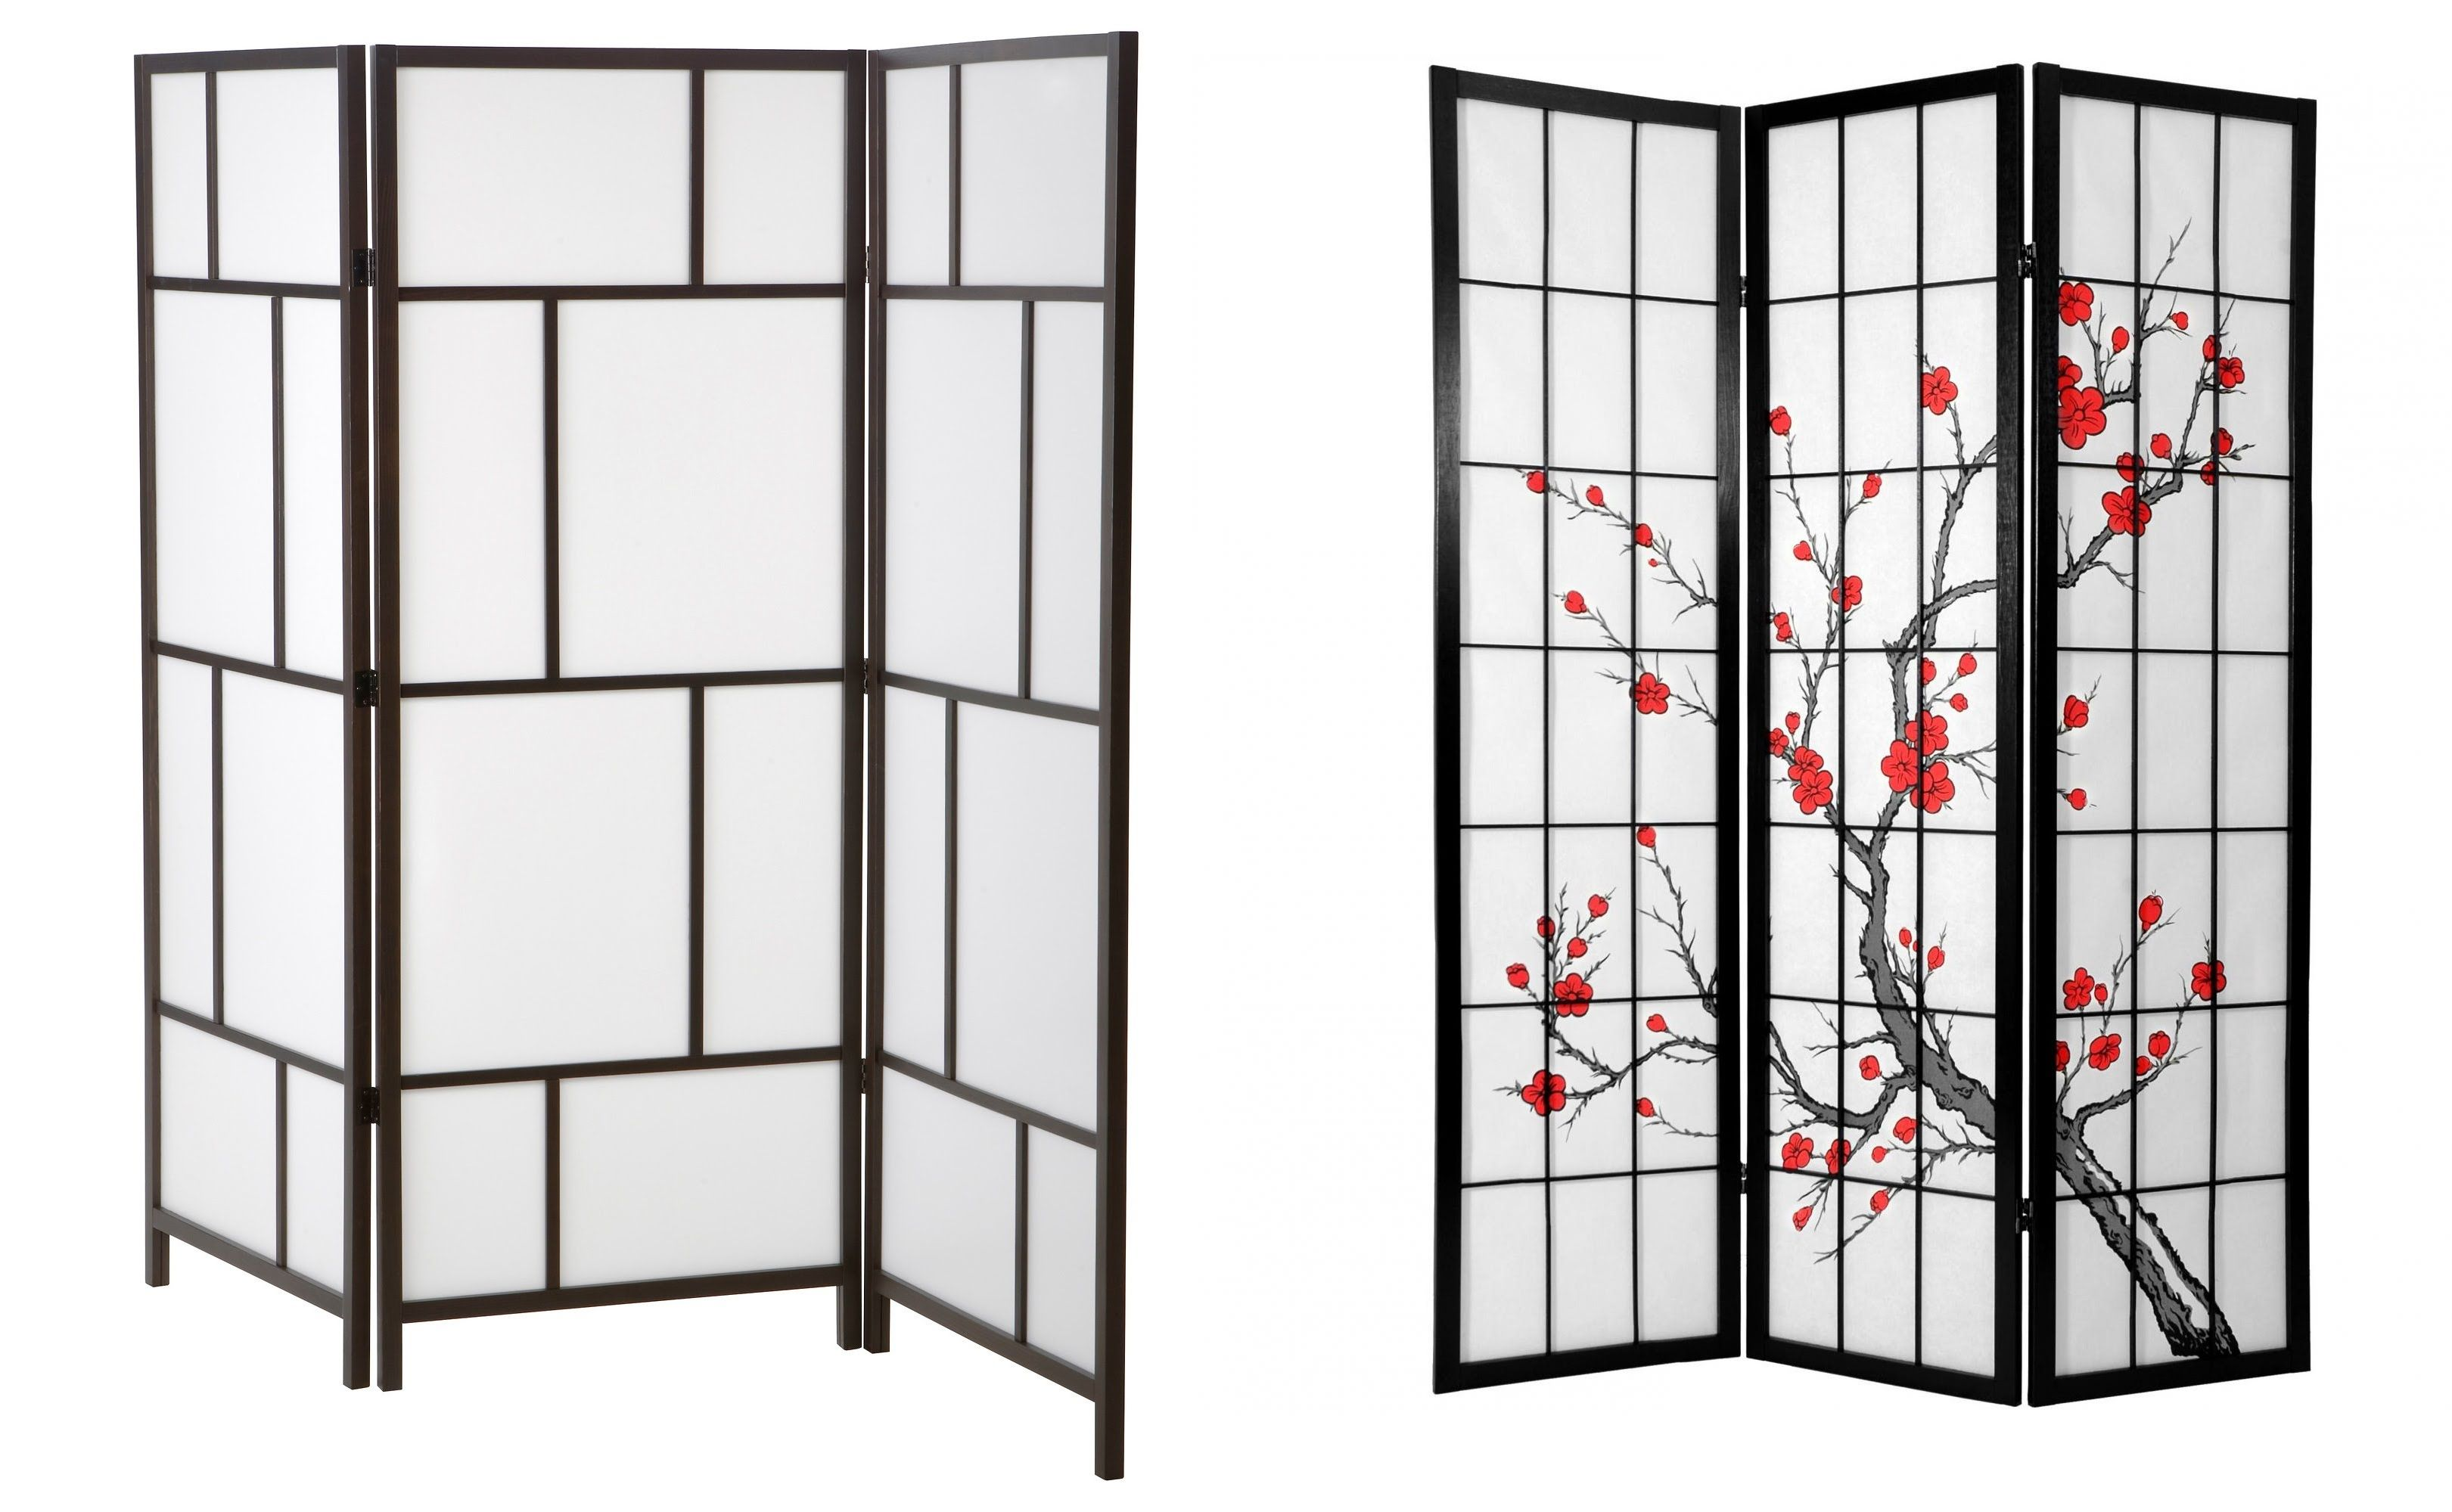 Ideas For Room Partitions Ikea Sliding Room Dividers Room Divider Portable Room Dividers